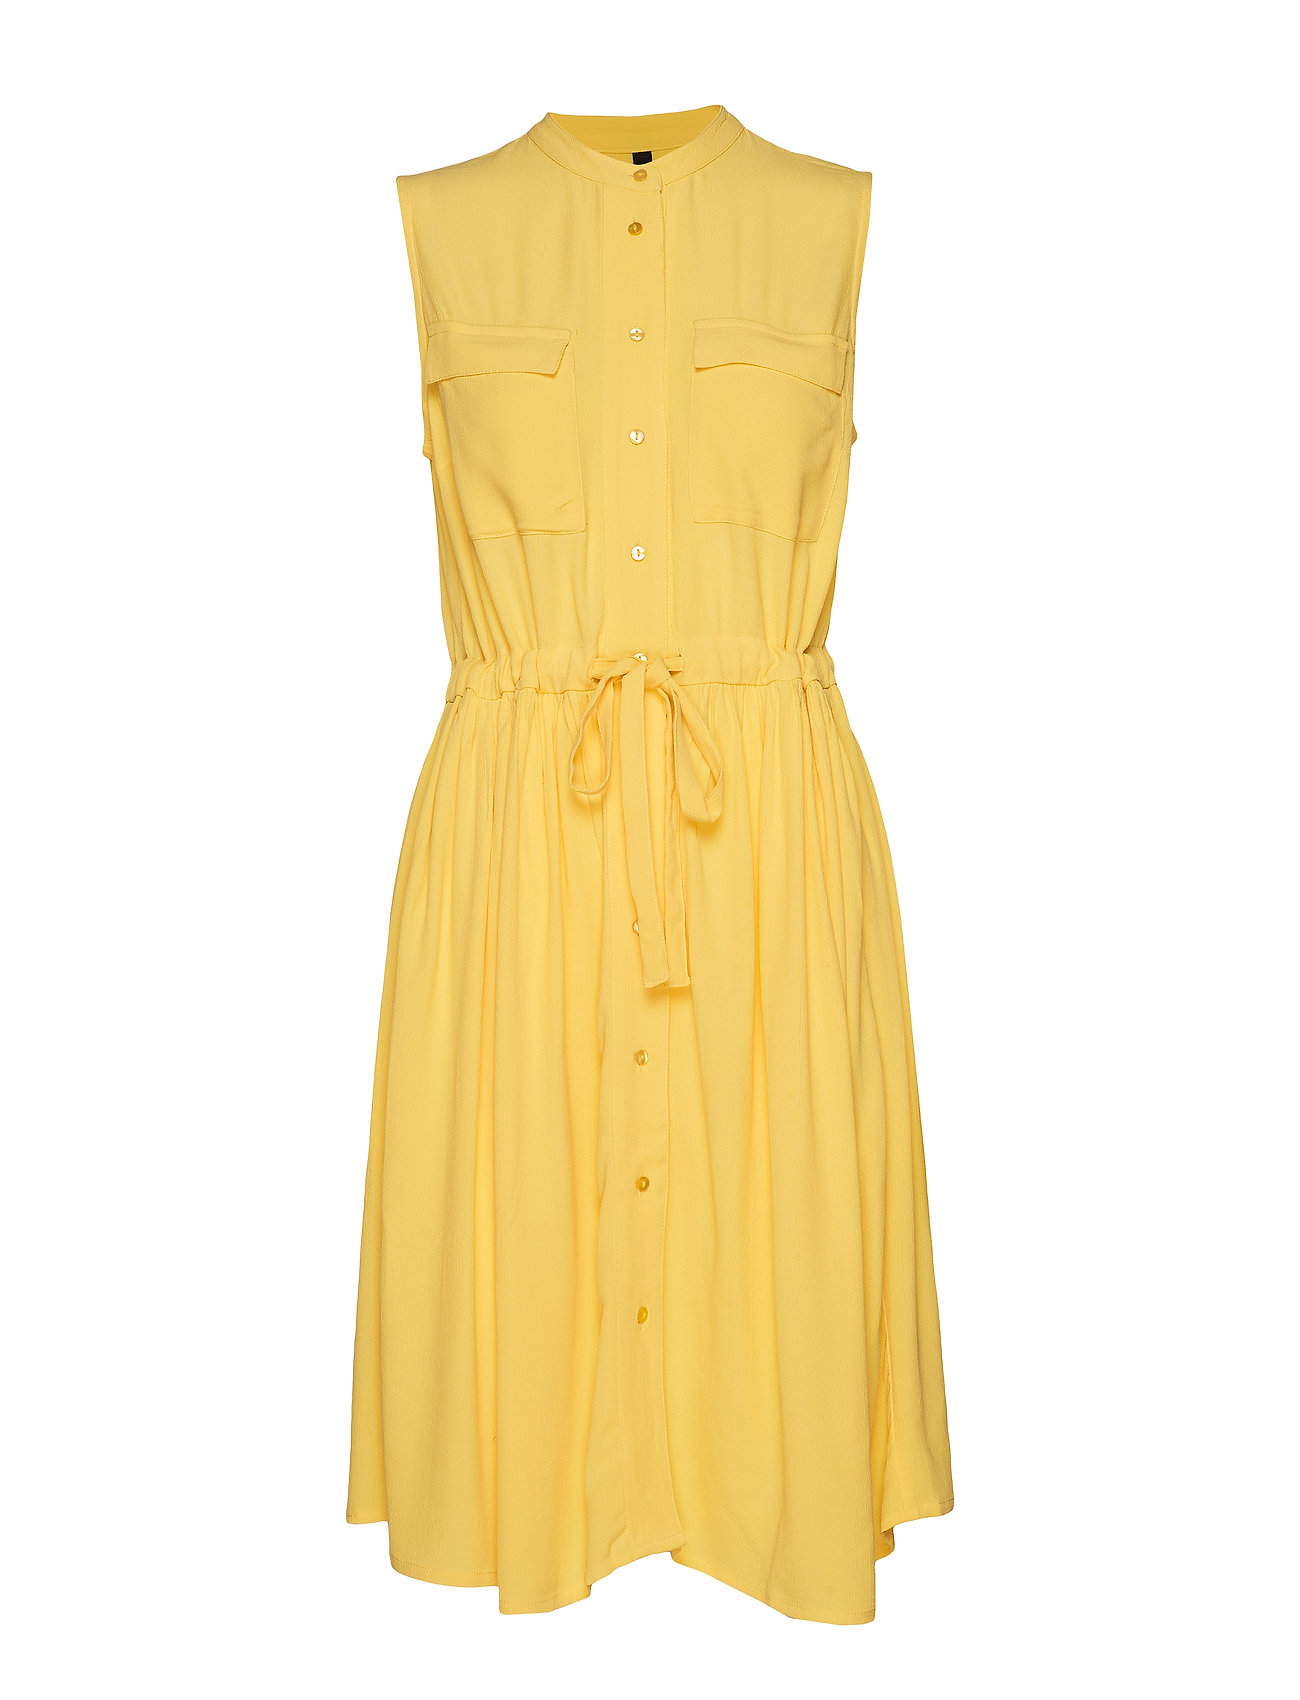 YAS YASNEELA SL DRESS VIP - PRIMROSE YELLOW